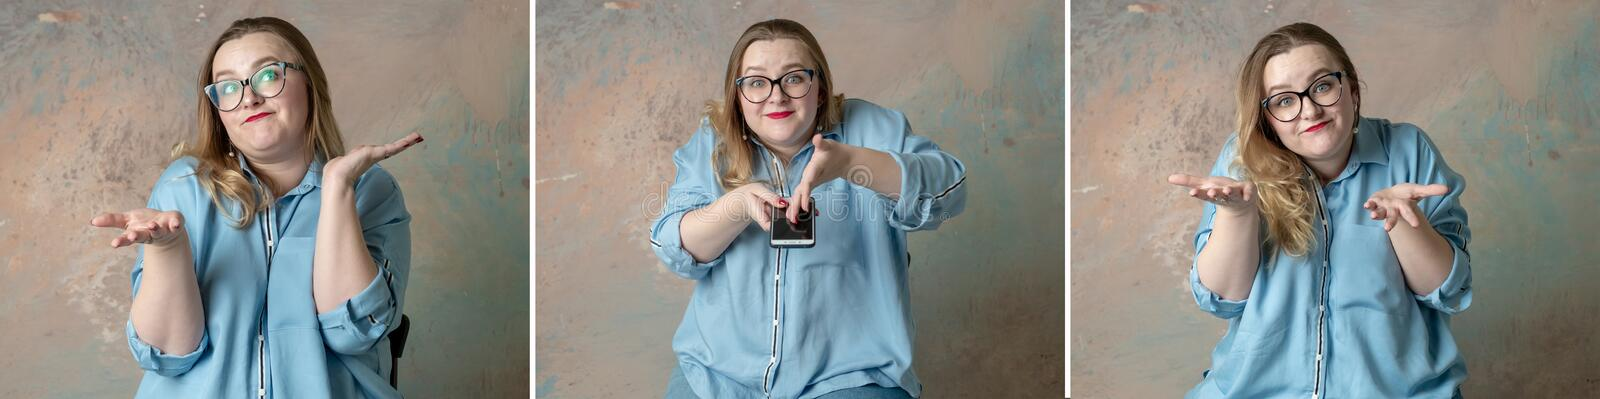 Collage Portraits of attractive plus size woman having emotions wonder with the phone in hand  over colored background. stock photography